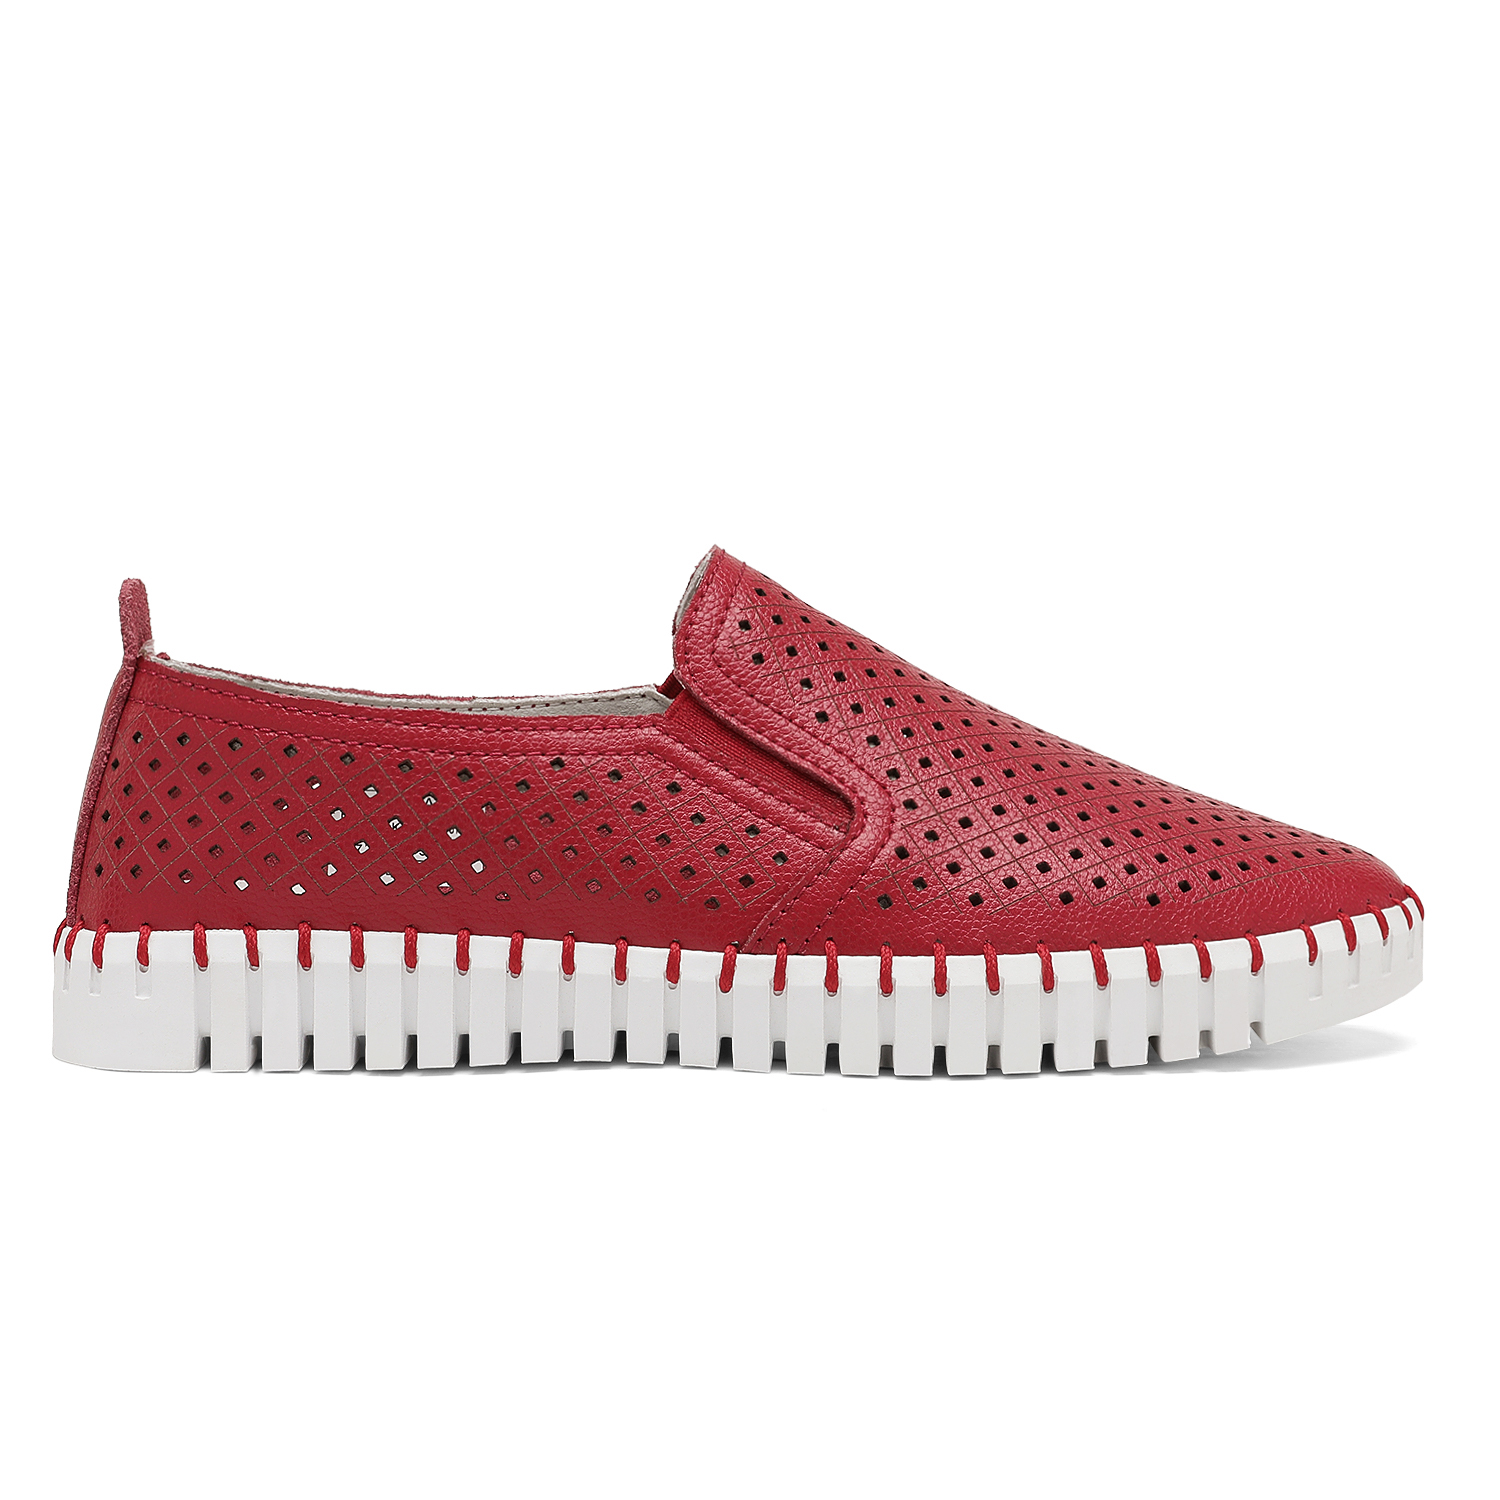 DREAM-PAIRS-Women-s-Breathable-Sneaker-Slip-On-Loafers-Comfortable-Flat-Shoes thumbnail 31